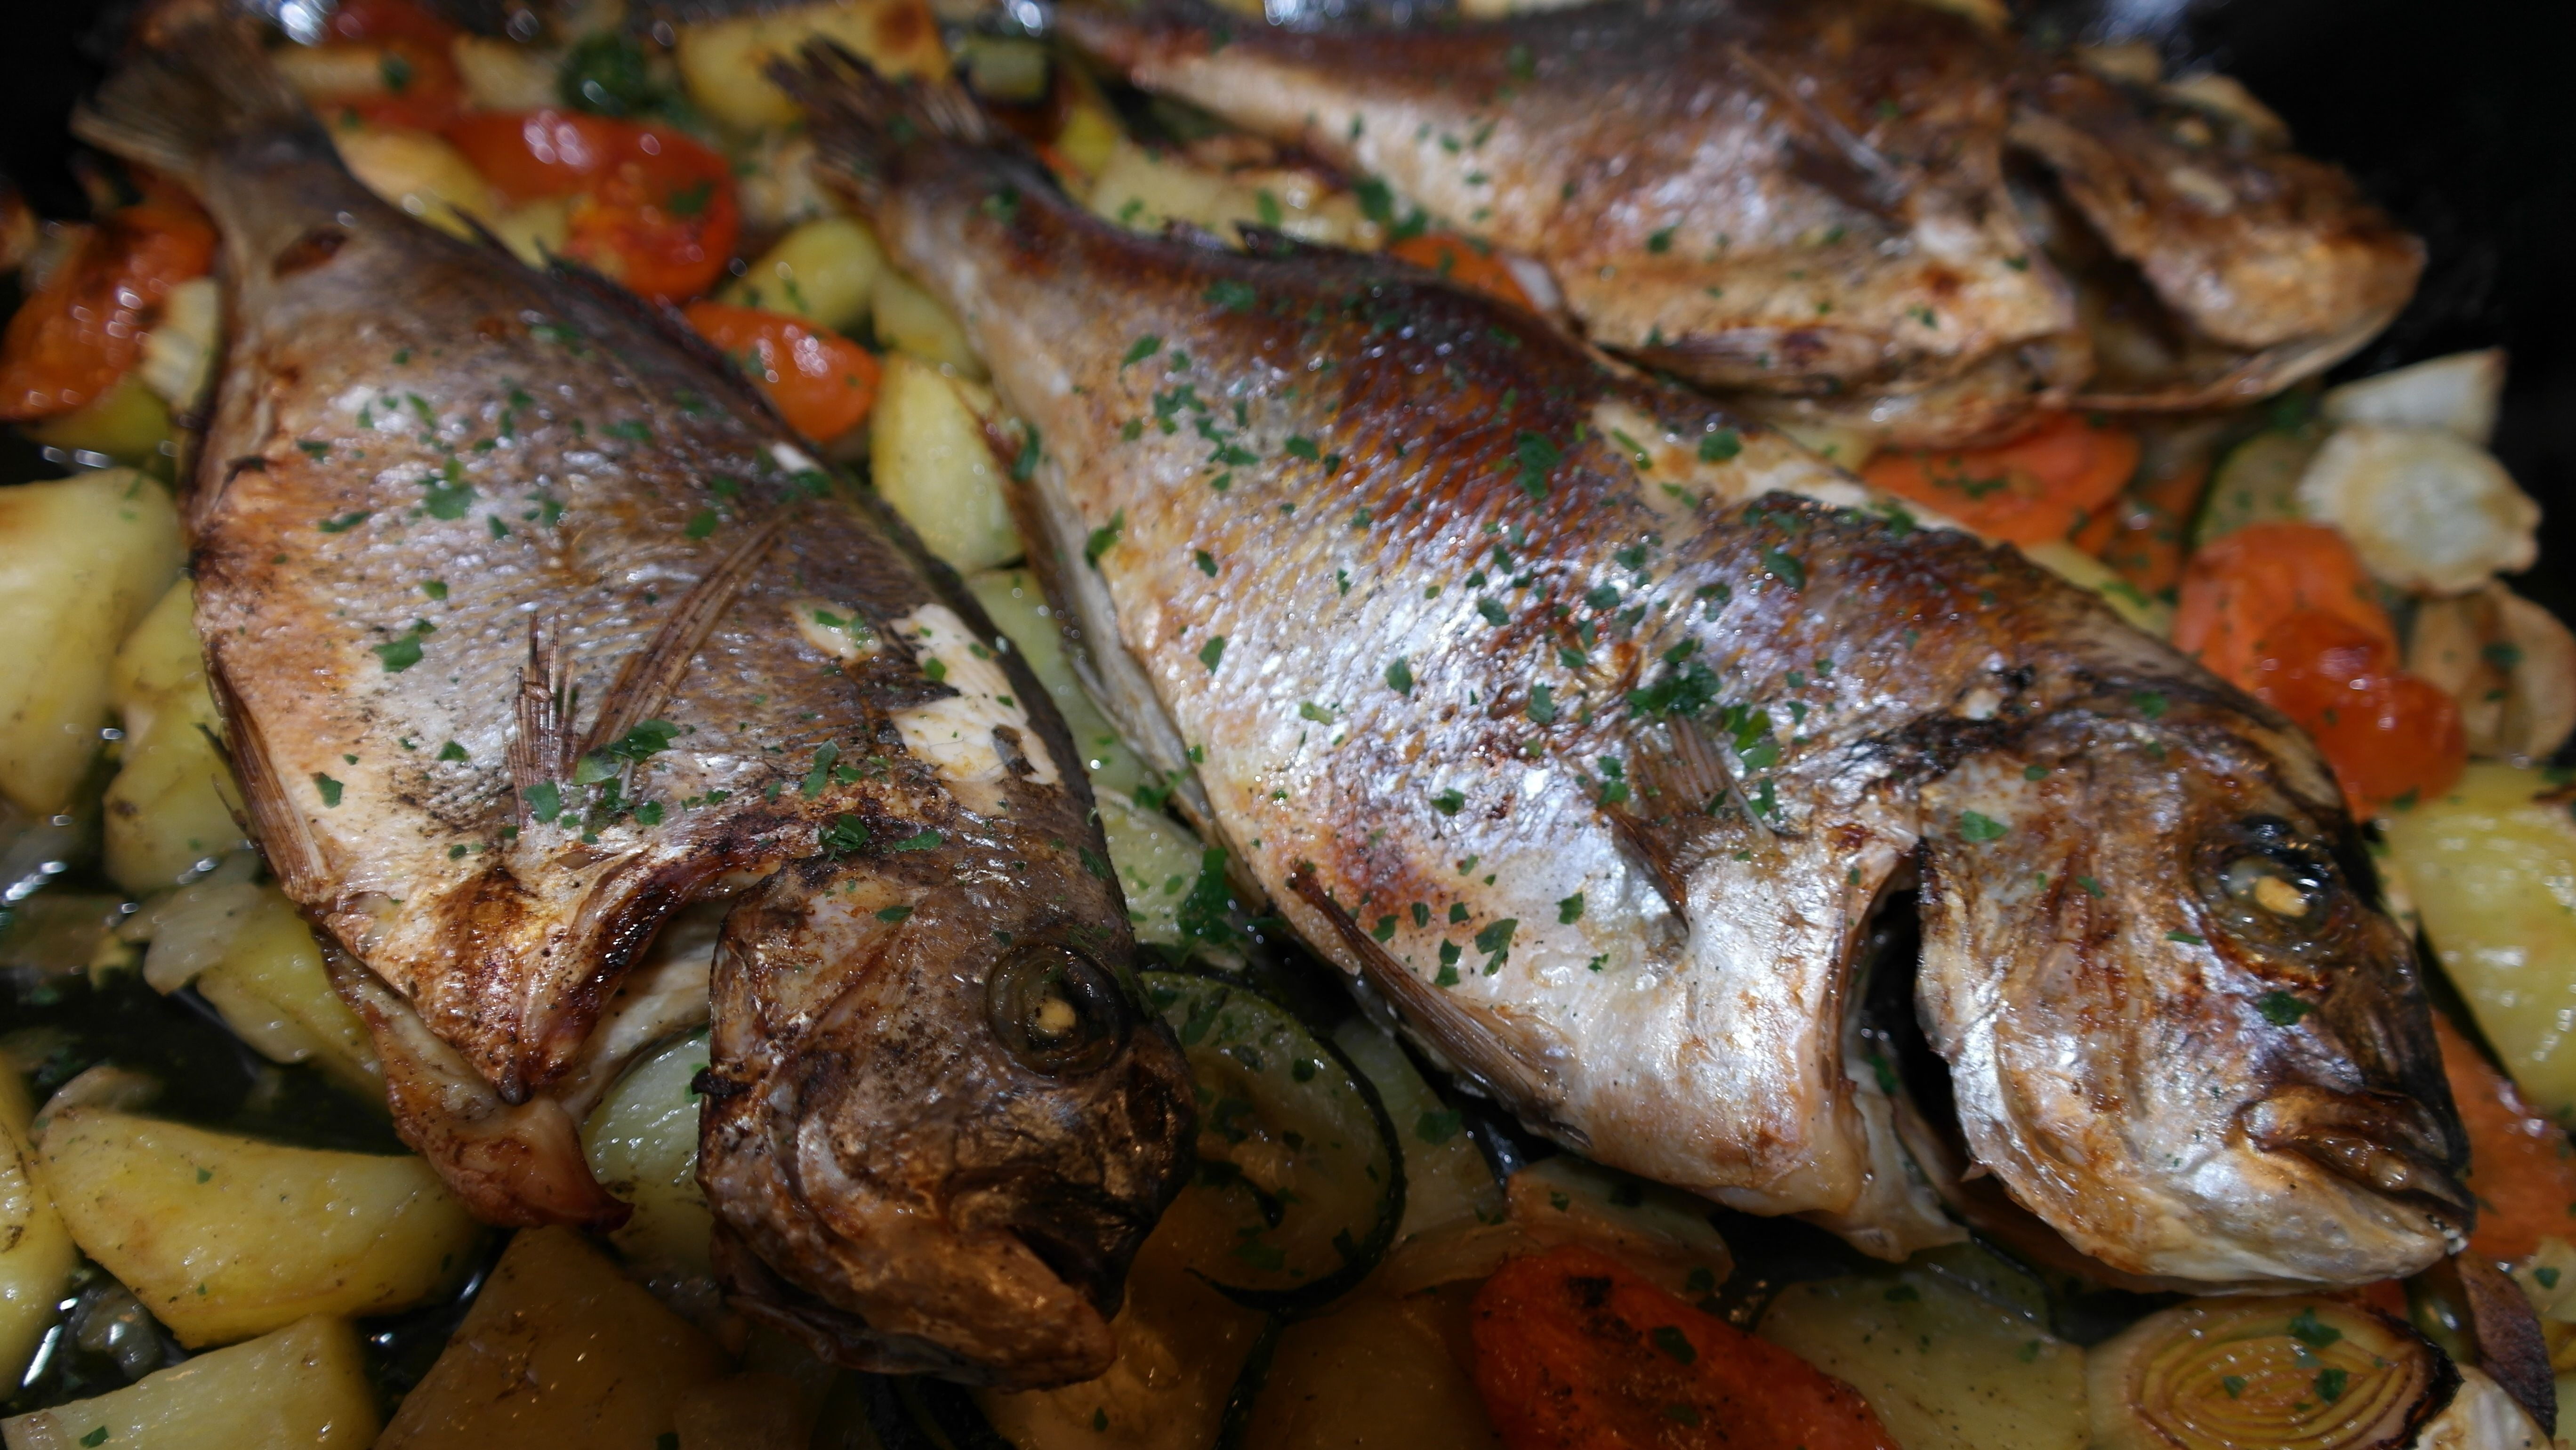 dish-food-cooking-produce-vegetable-fish-991176-pxhere.com